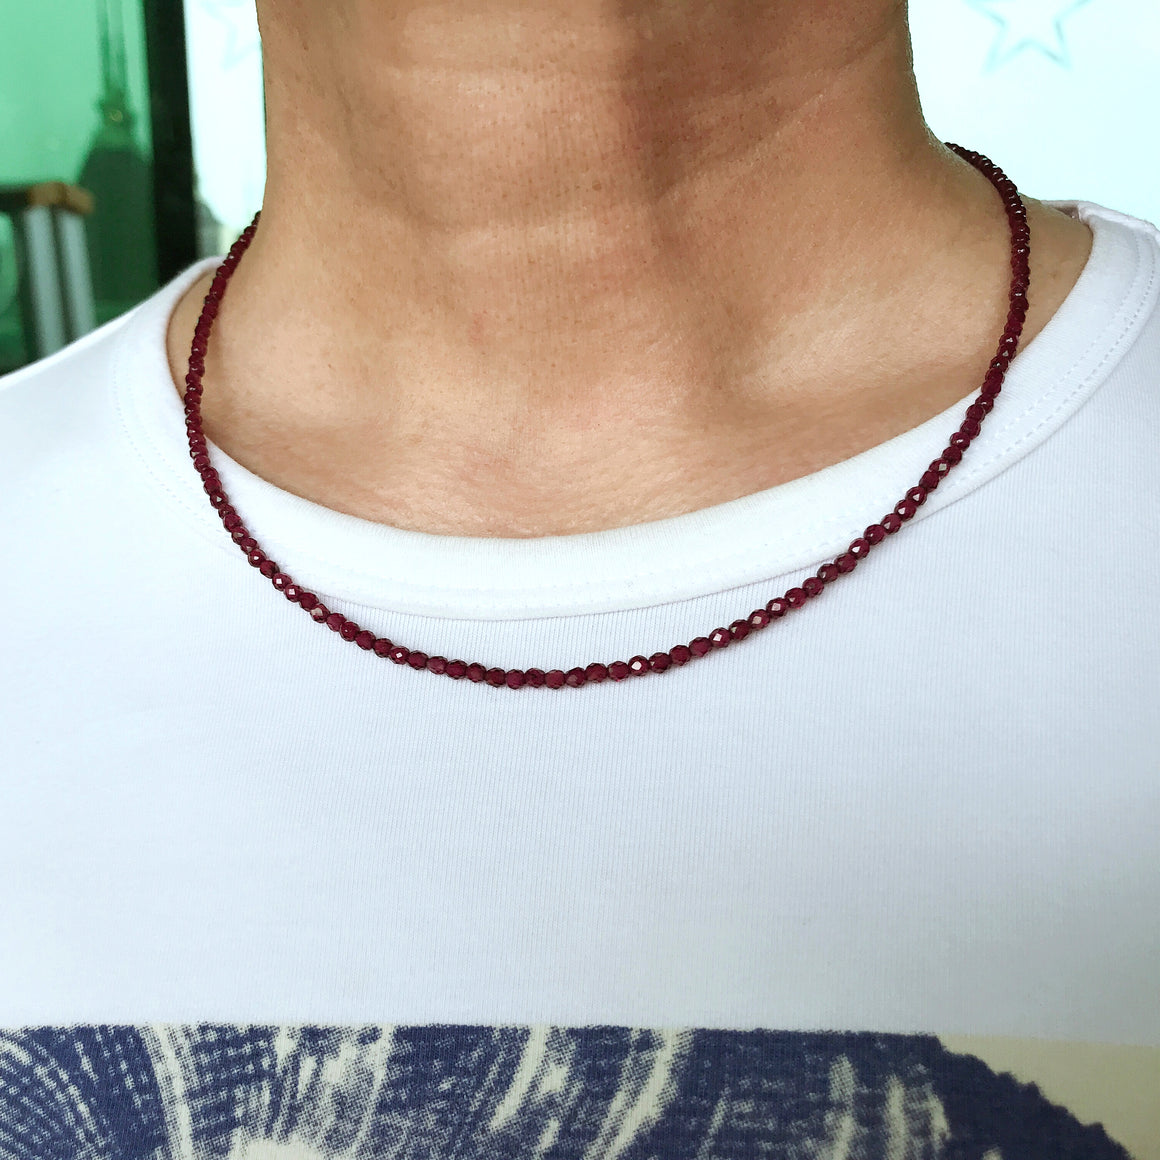 Handmade Healing Natural Garnet Crystal Necklace - Men's Women's Daily Wear, Awareness with 3mm Faceted Beads, Genuine Non-Plated S925 Sterling Silver Adjustable Chain & Clasp NK258